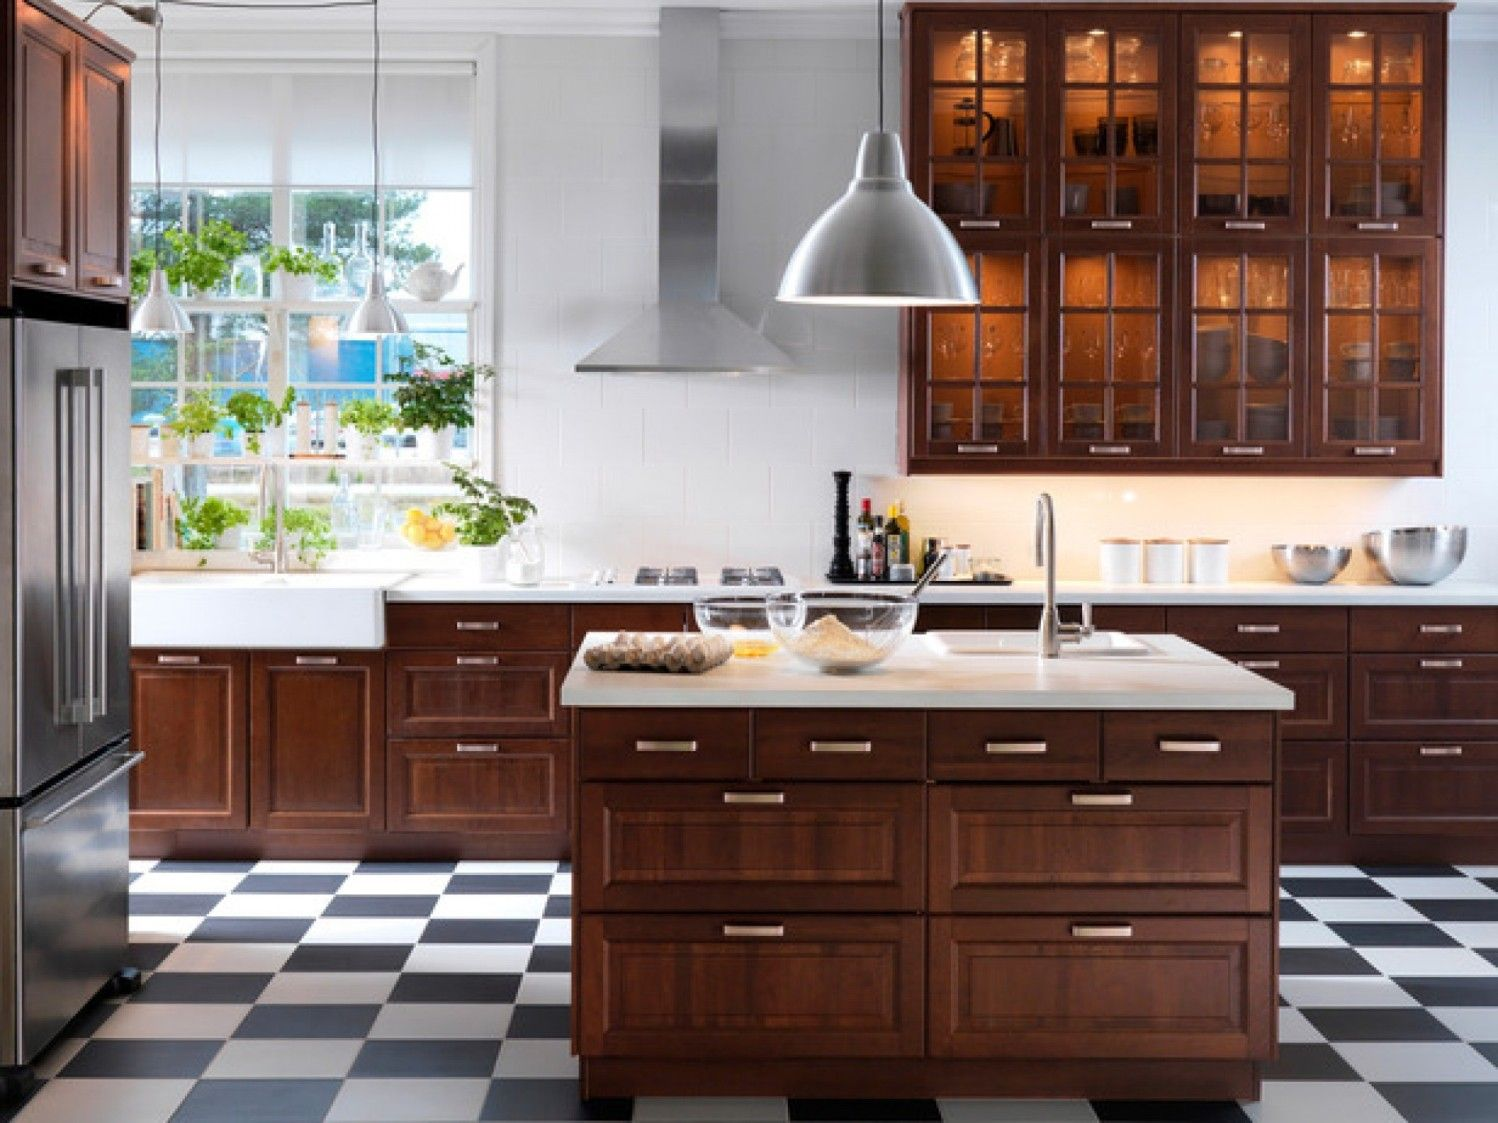 Designing Tips And Tricks For Elegant And Neat Kitchen Cabinets